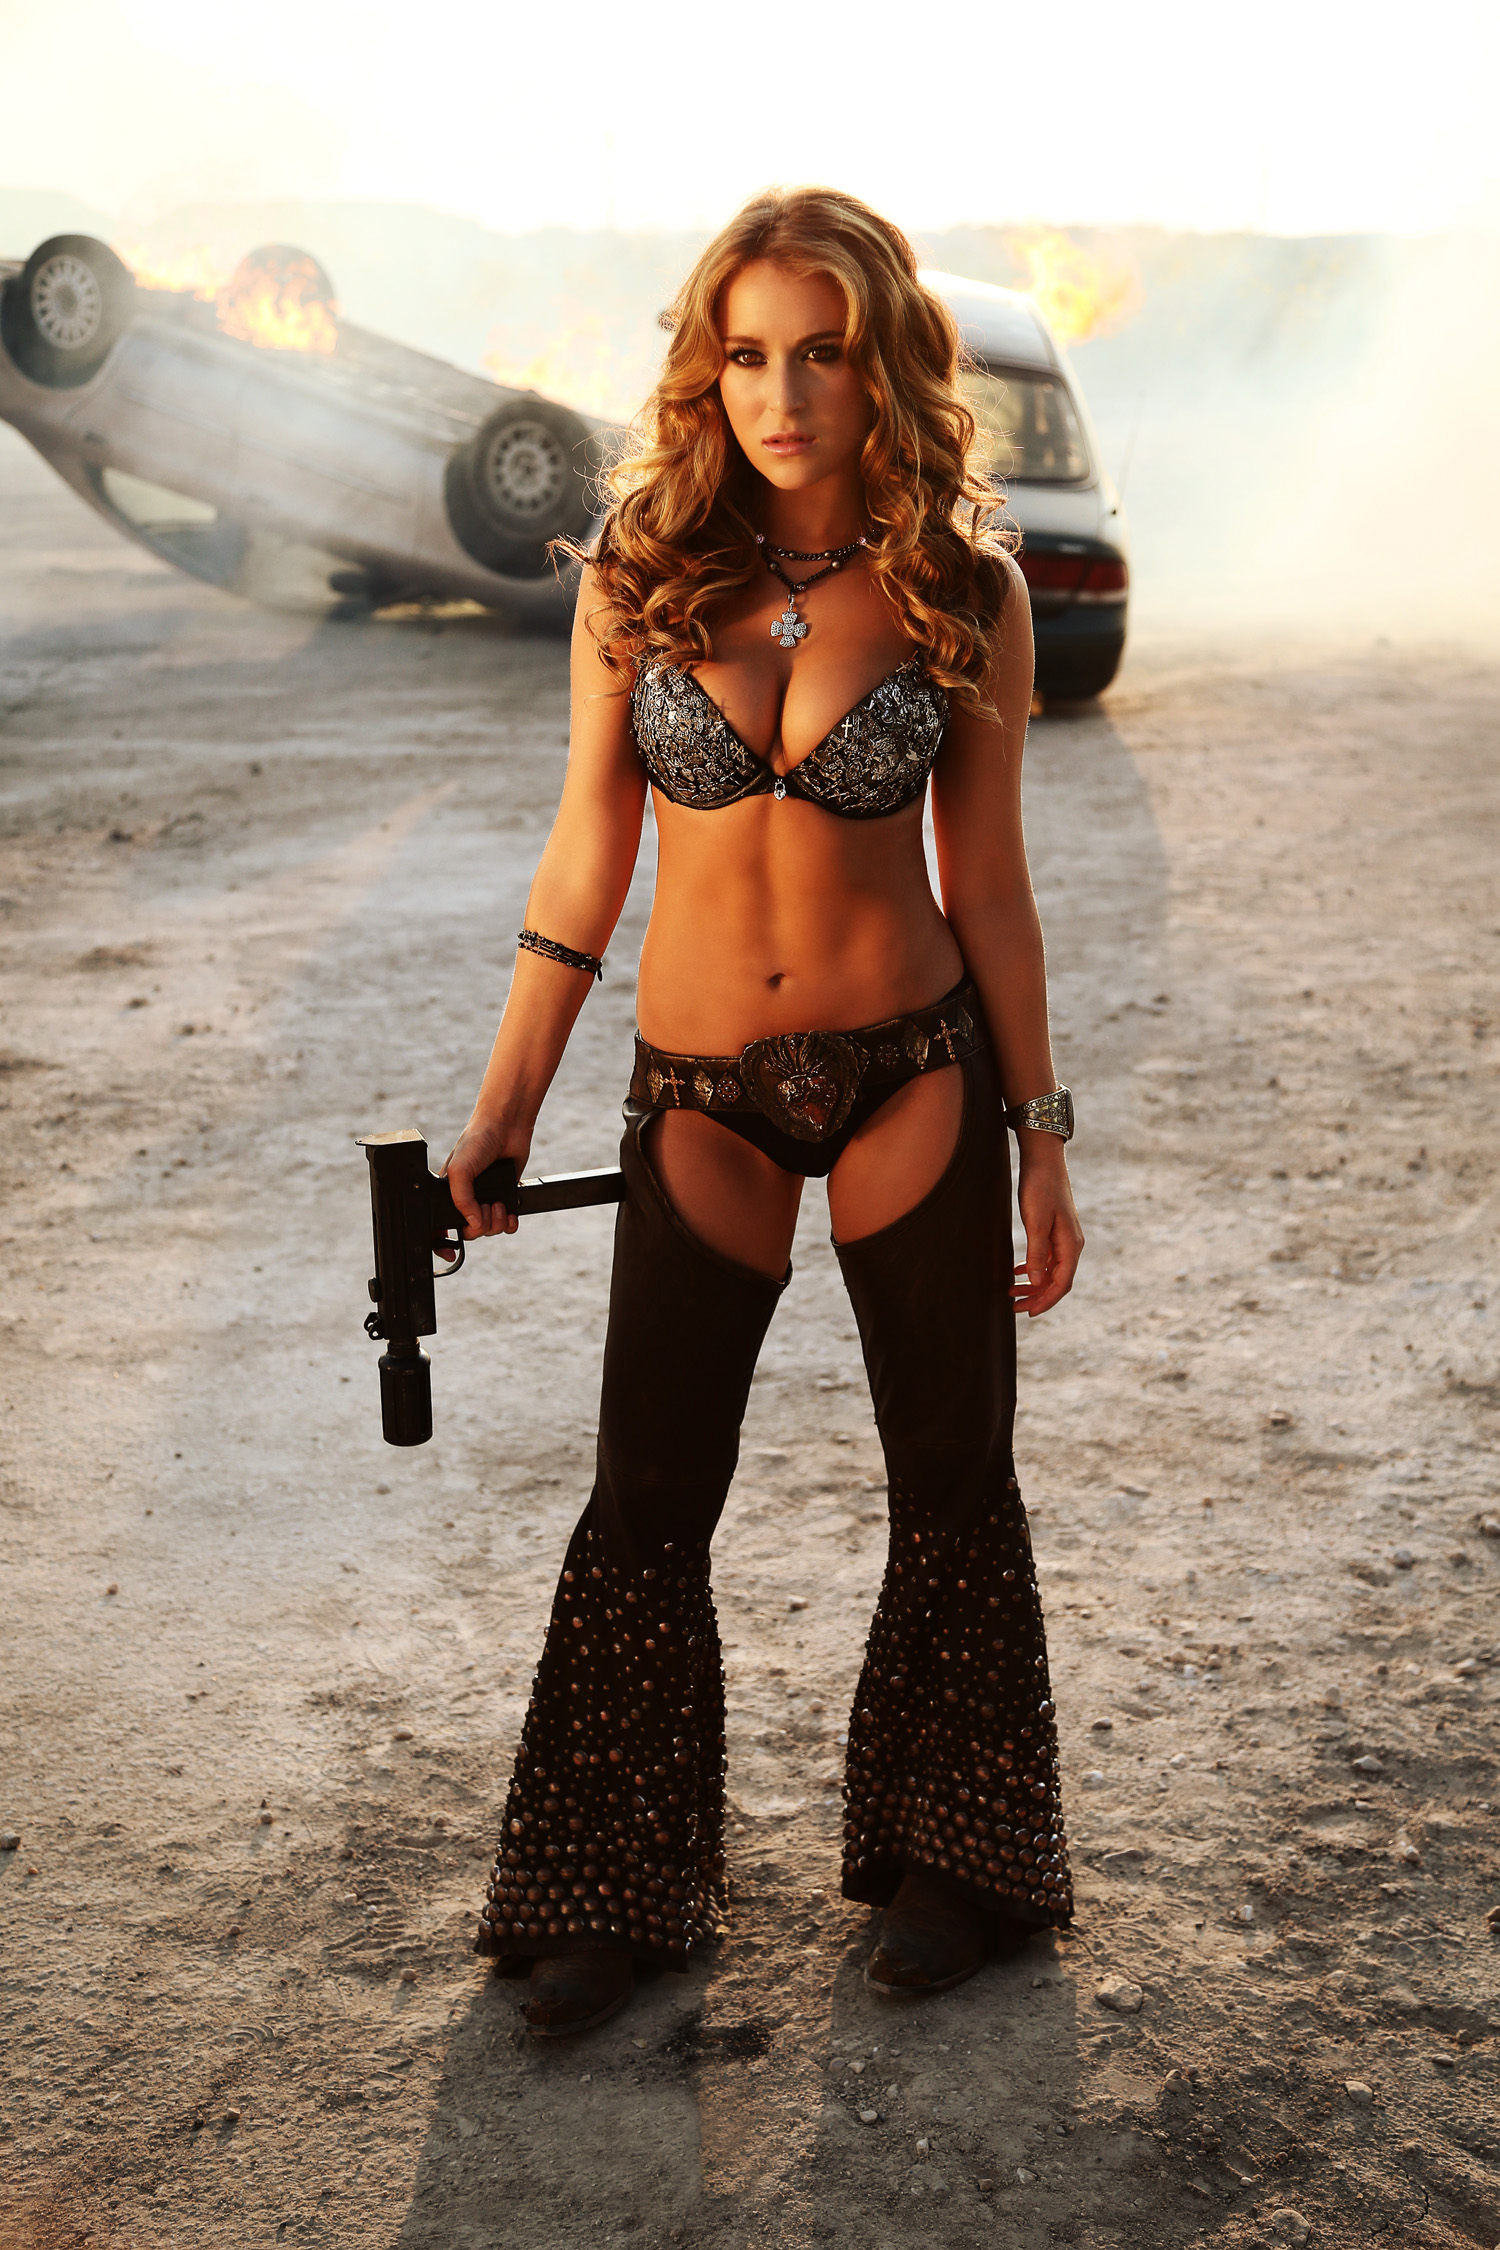 MacheteKills Alexa v001 Machete Kills His Co Stars In New Official Posters and Stills